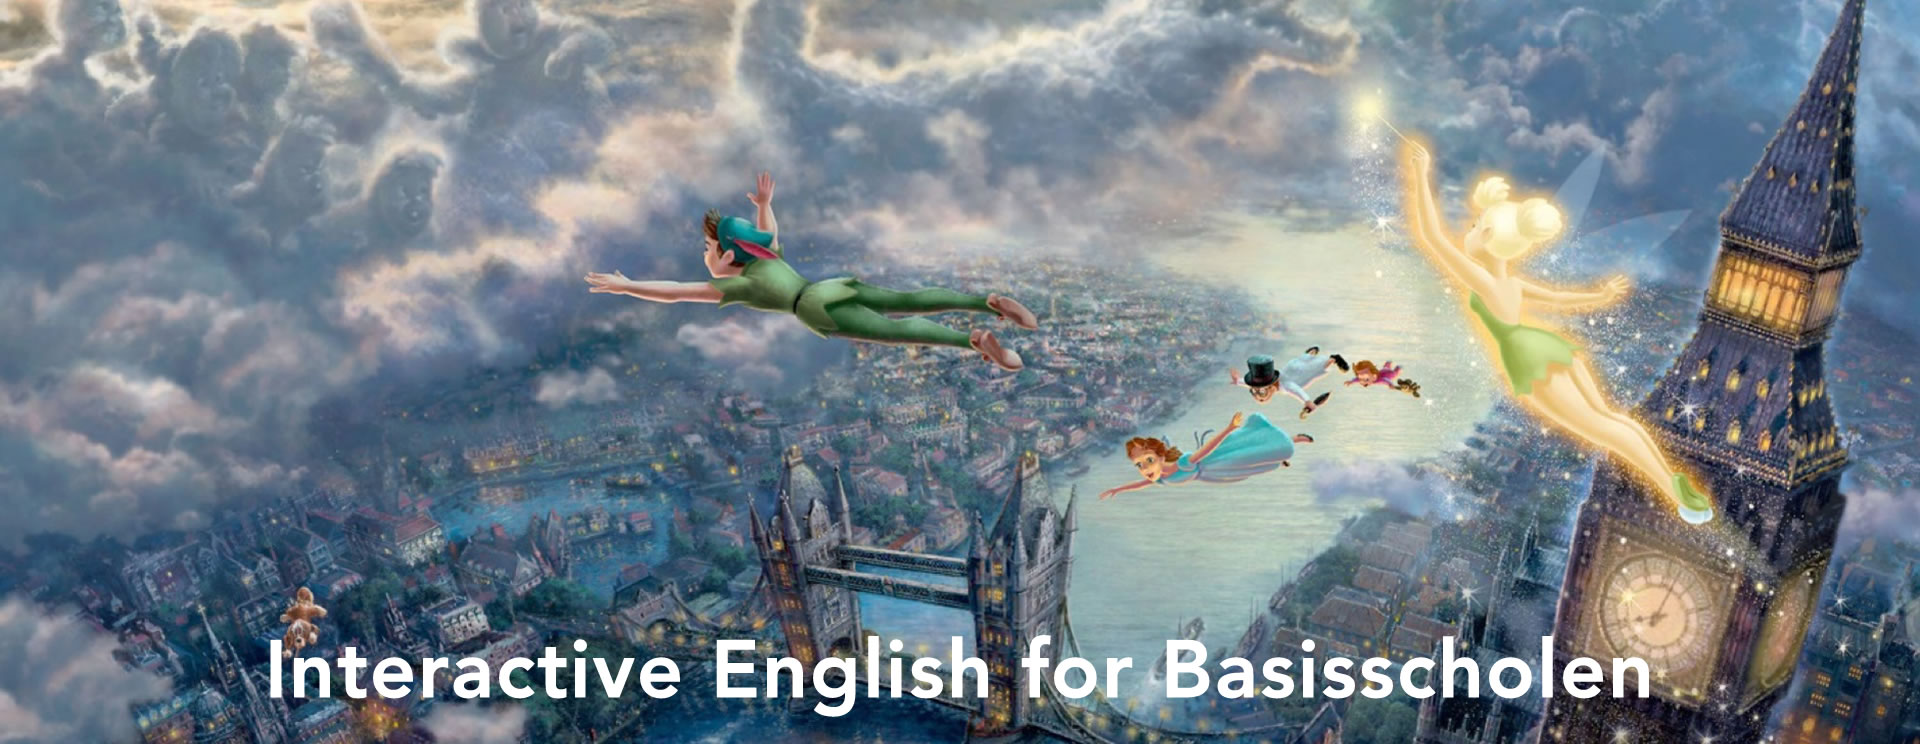 Interactive English for Basisscholen - Peter Pan